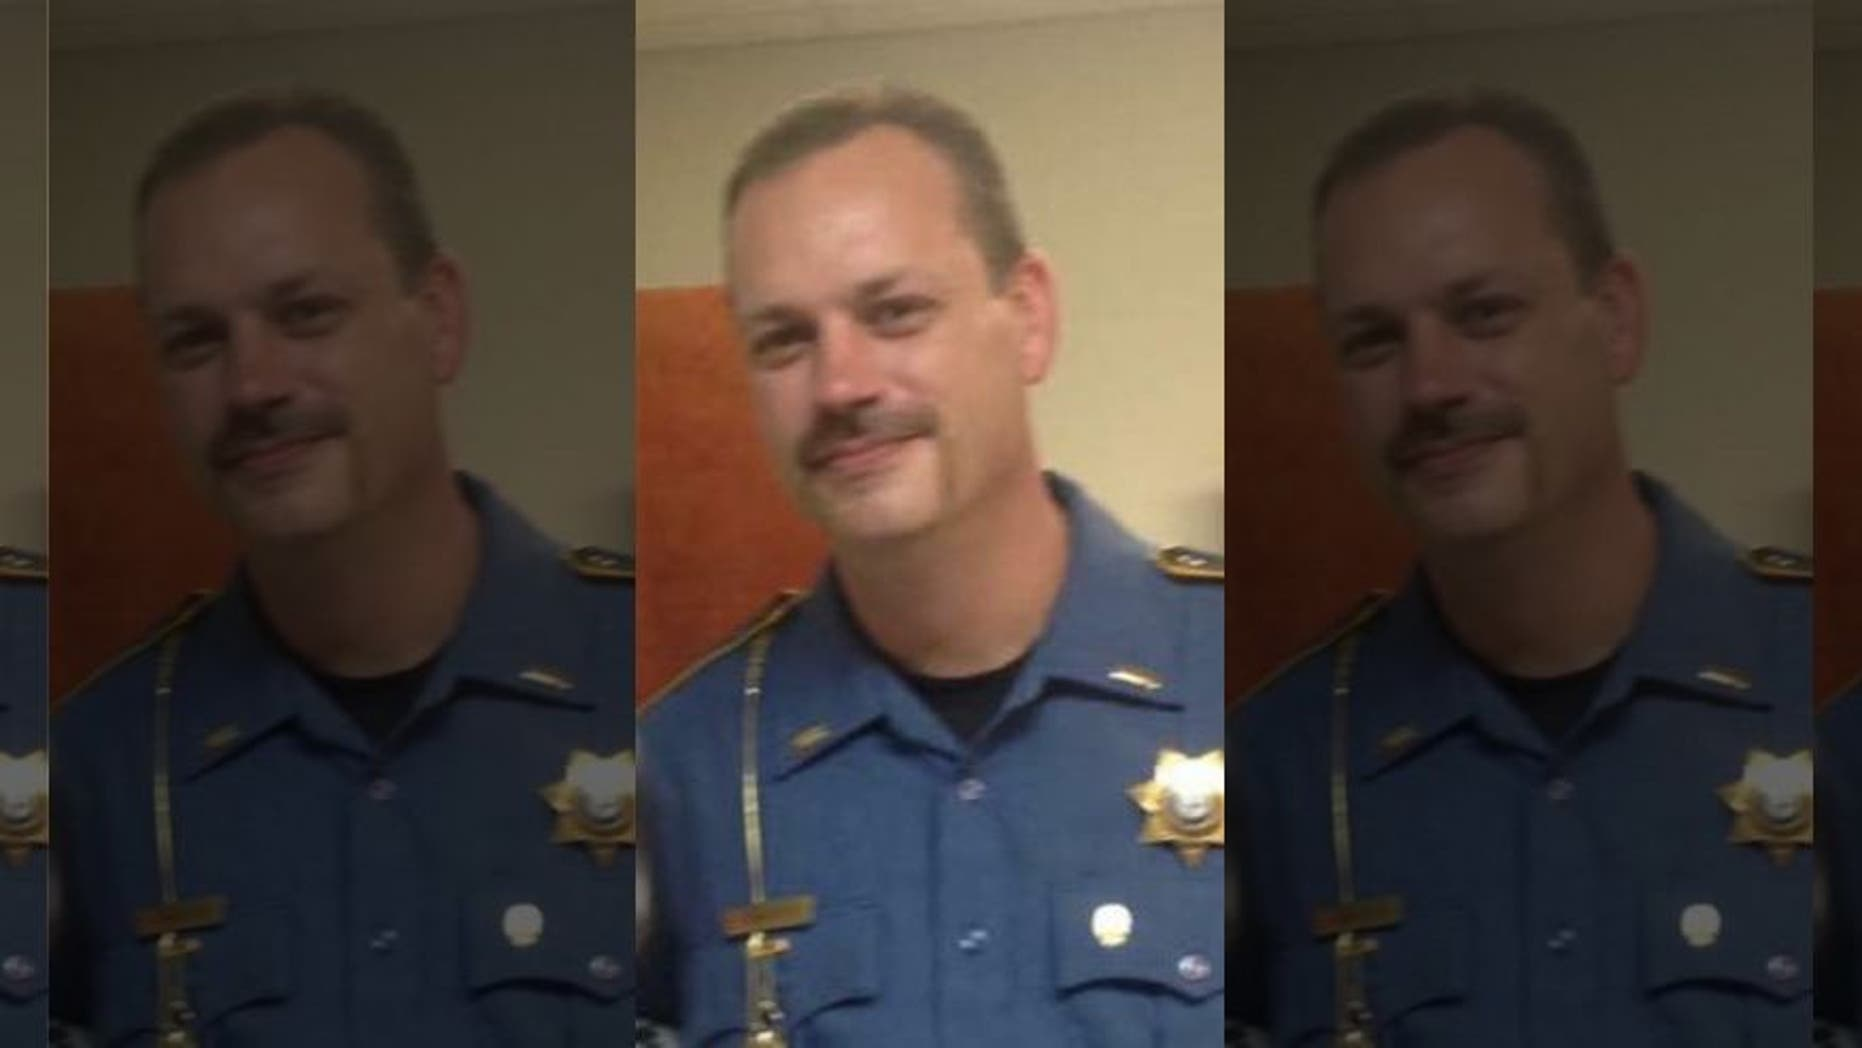 A visitation was held Sunday in Arkansas for Yell County Sheriff's Deputy Lt. Kevin Mainhart, who was killed in the line of duty.